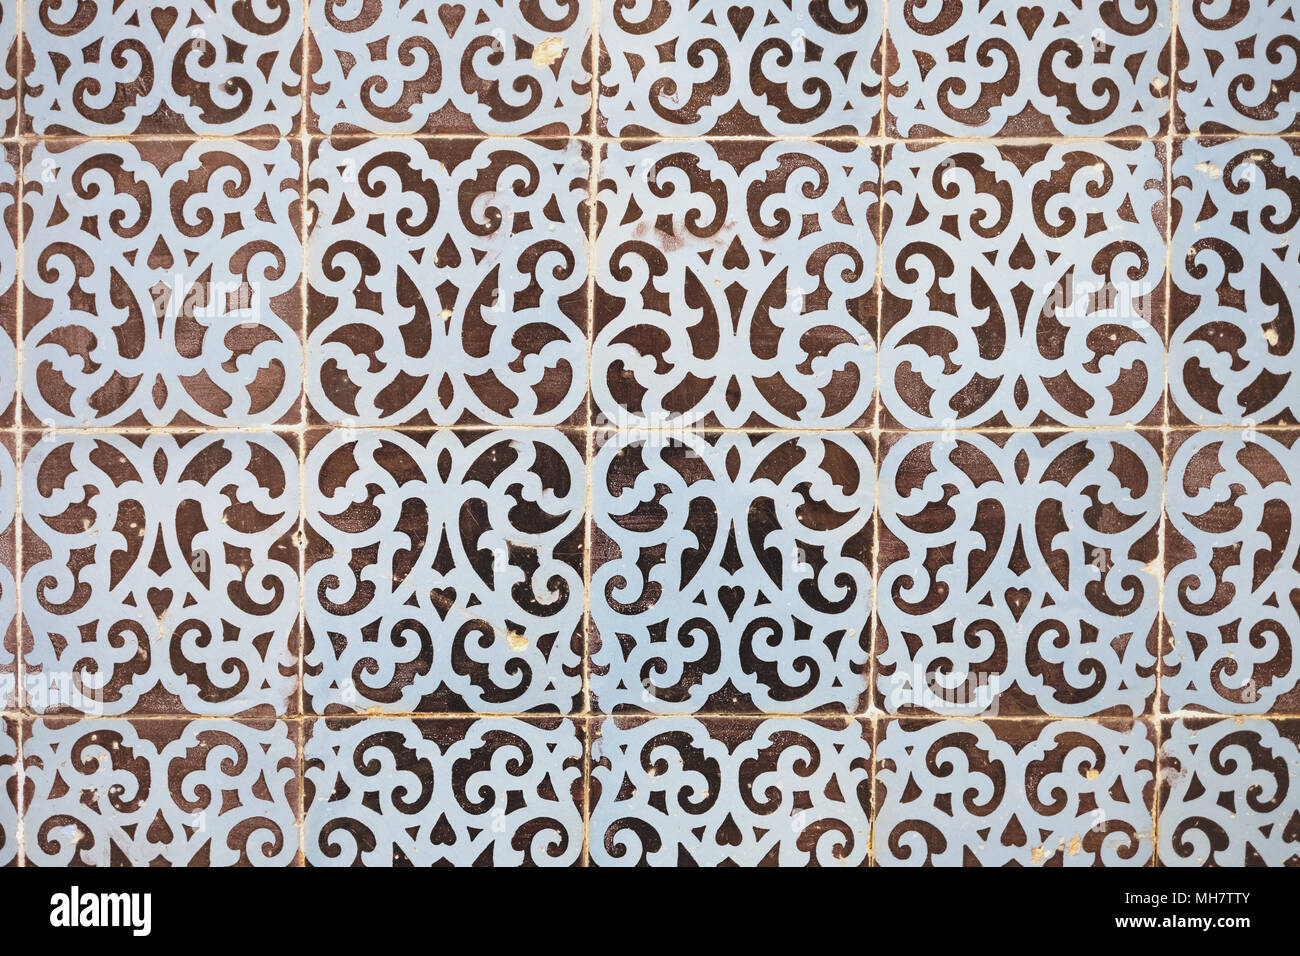 Typical portuguese decorations on a wall with colored ceramic tiles typical portuguese decorations on a wall with colored ceramic tiles traditional mosaic tiles azulejos stock photo 182726011 alamy dailygadgetfo Images